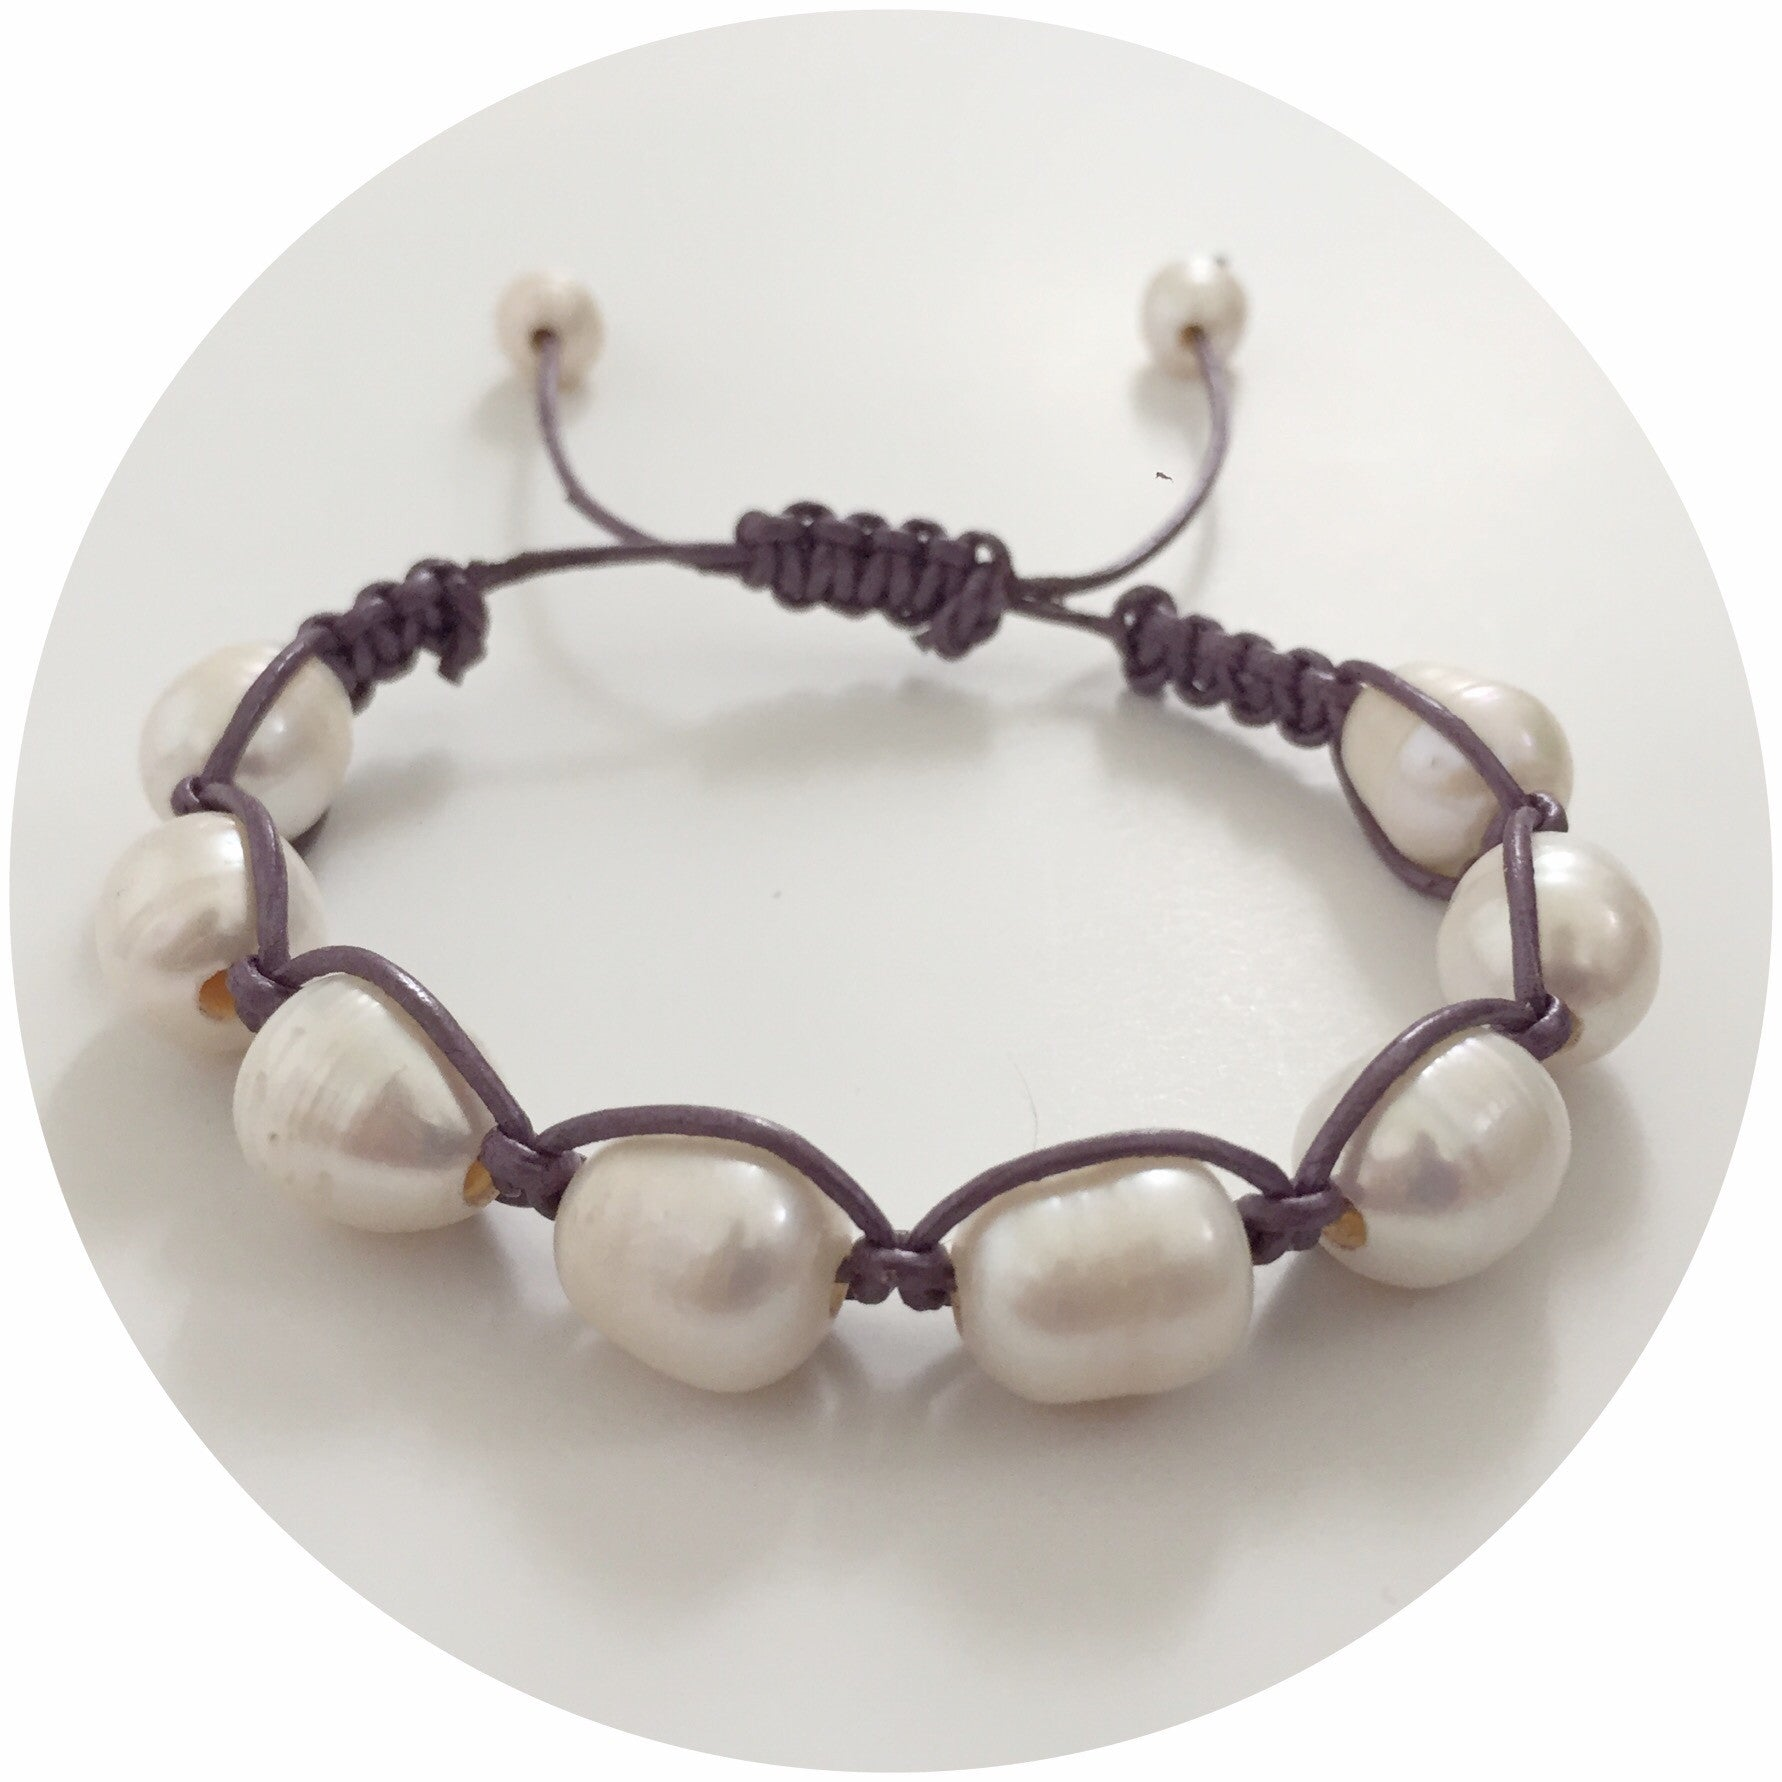 Purple Metallic Leather with Freshwater Pearl Shamballa Bracelet - Oriana Lamarca LLC